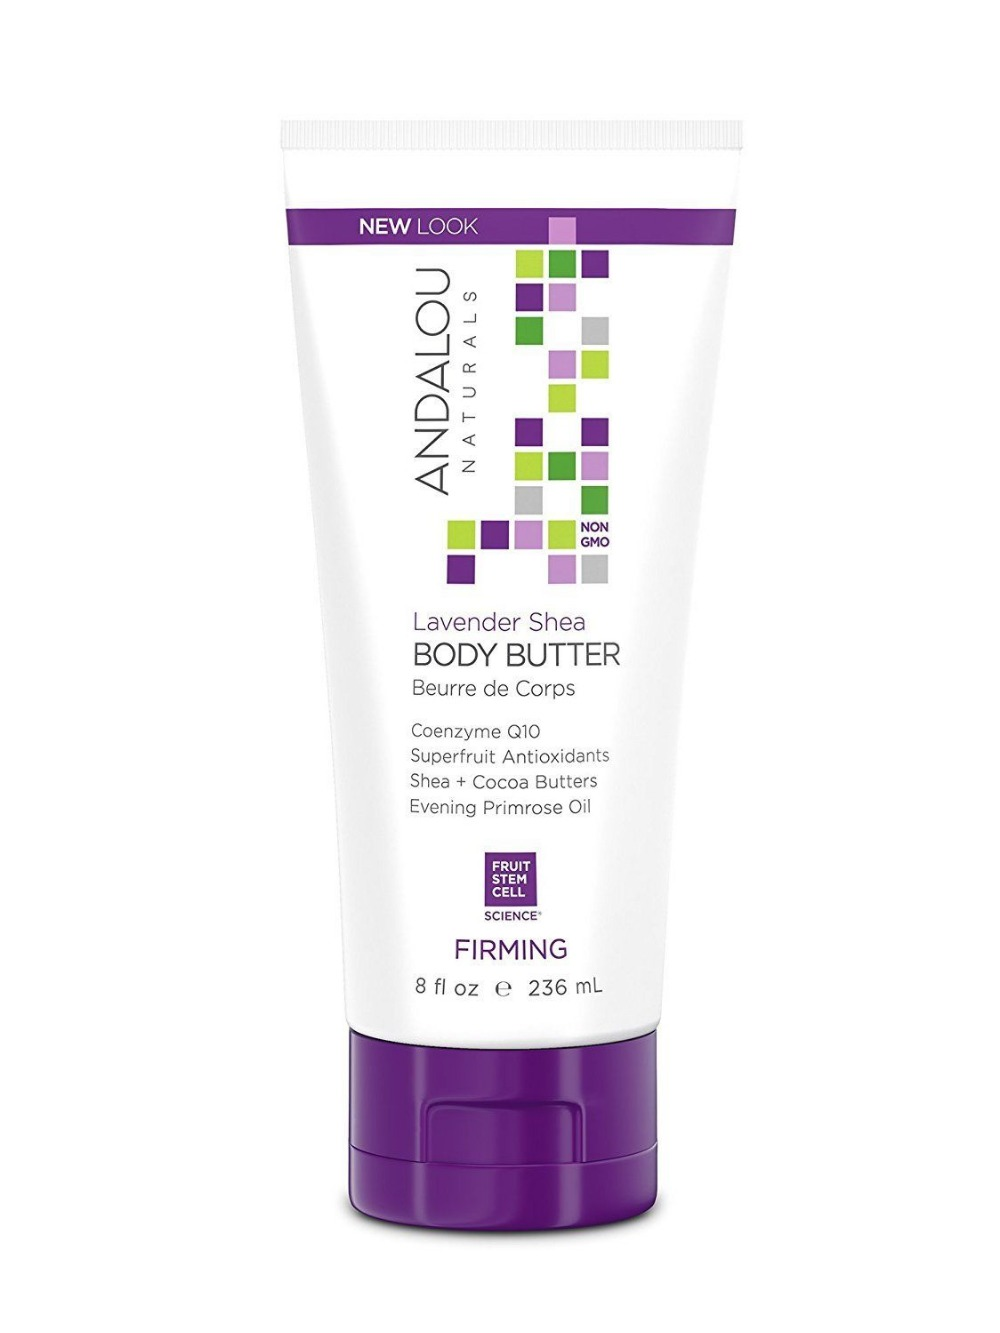 Andalou Naturals Firming Body Butter Lavender Shea - 8 Fl Oz skin correcting serum 1 19 fl oz from rivage